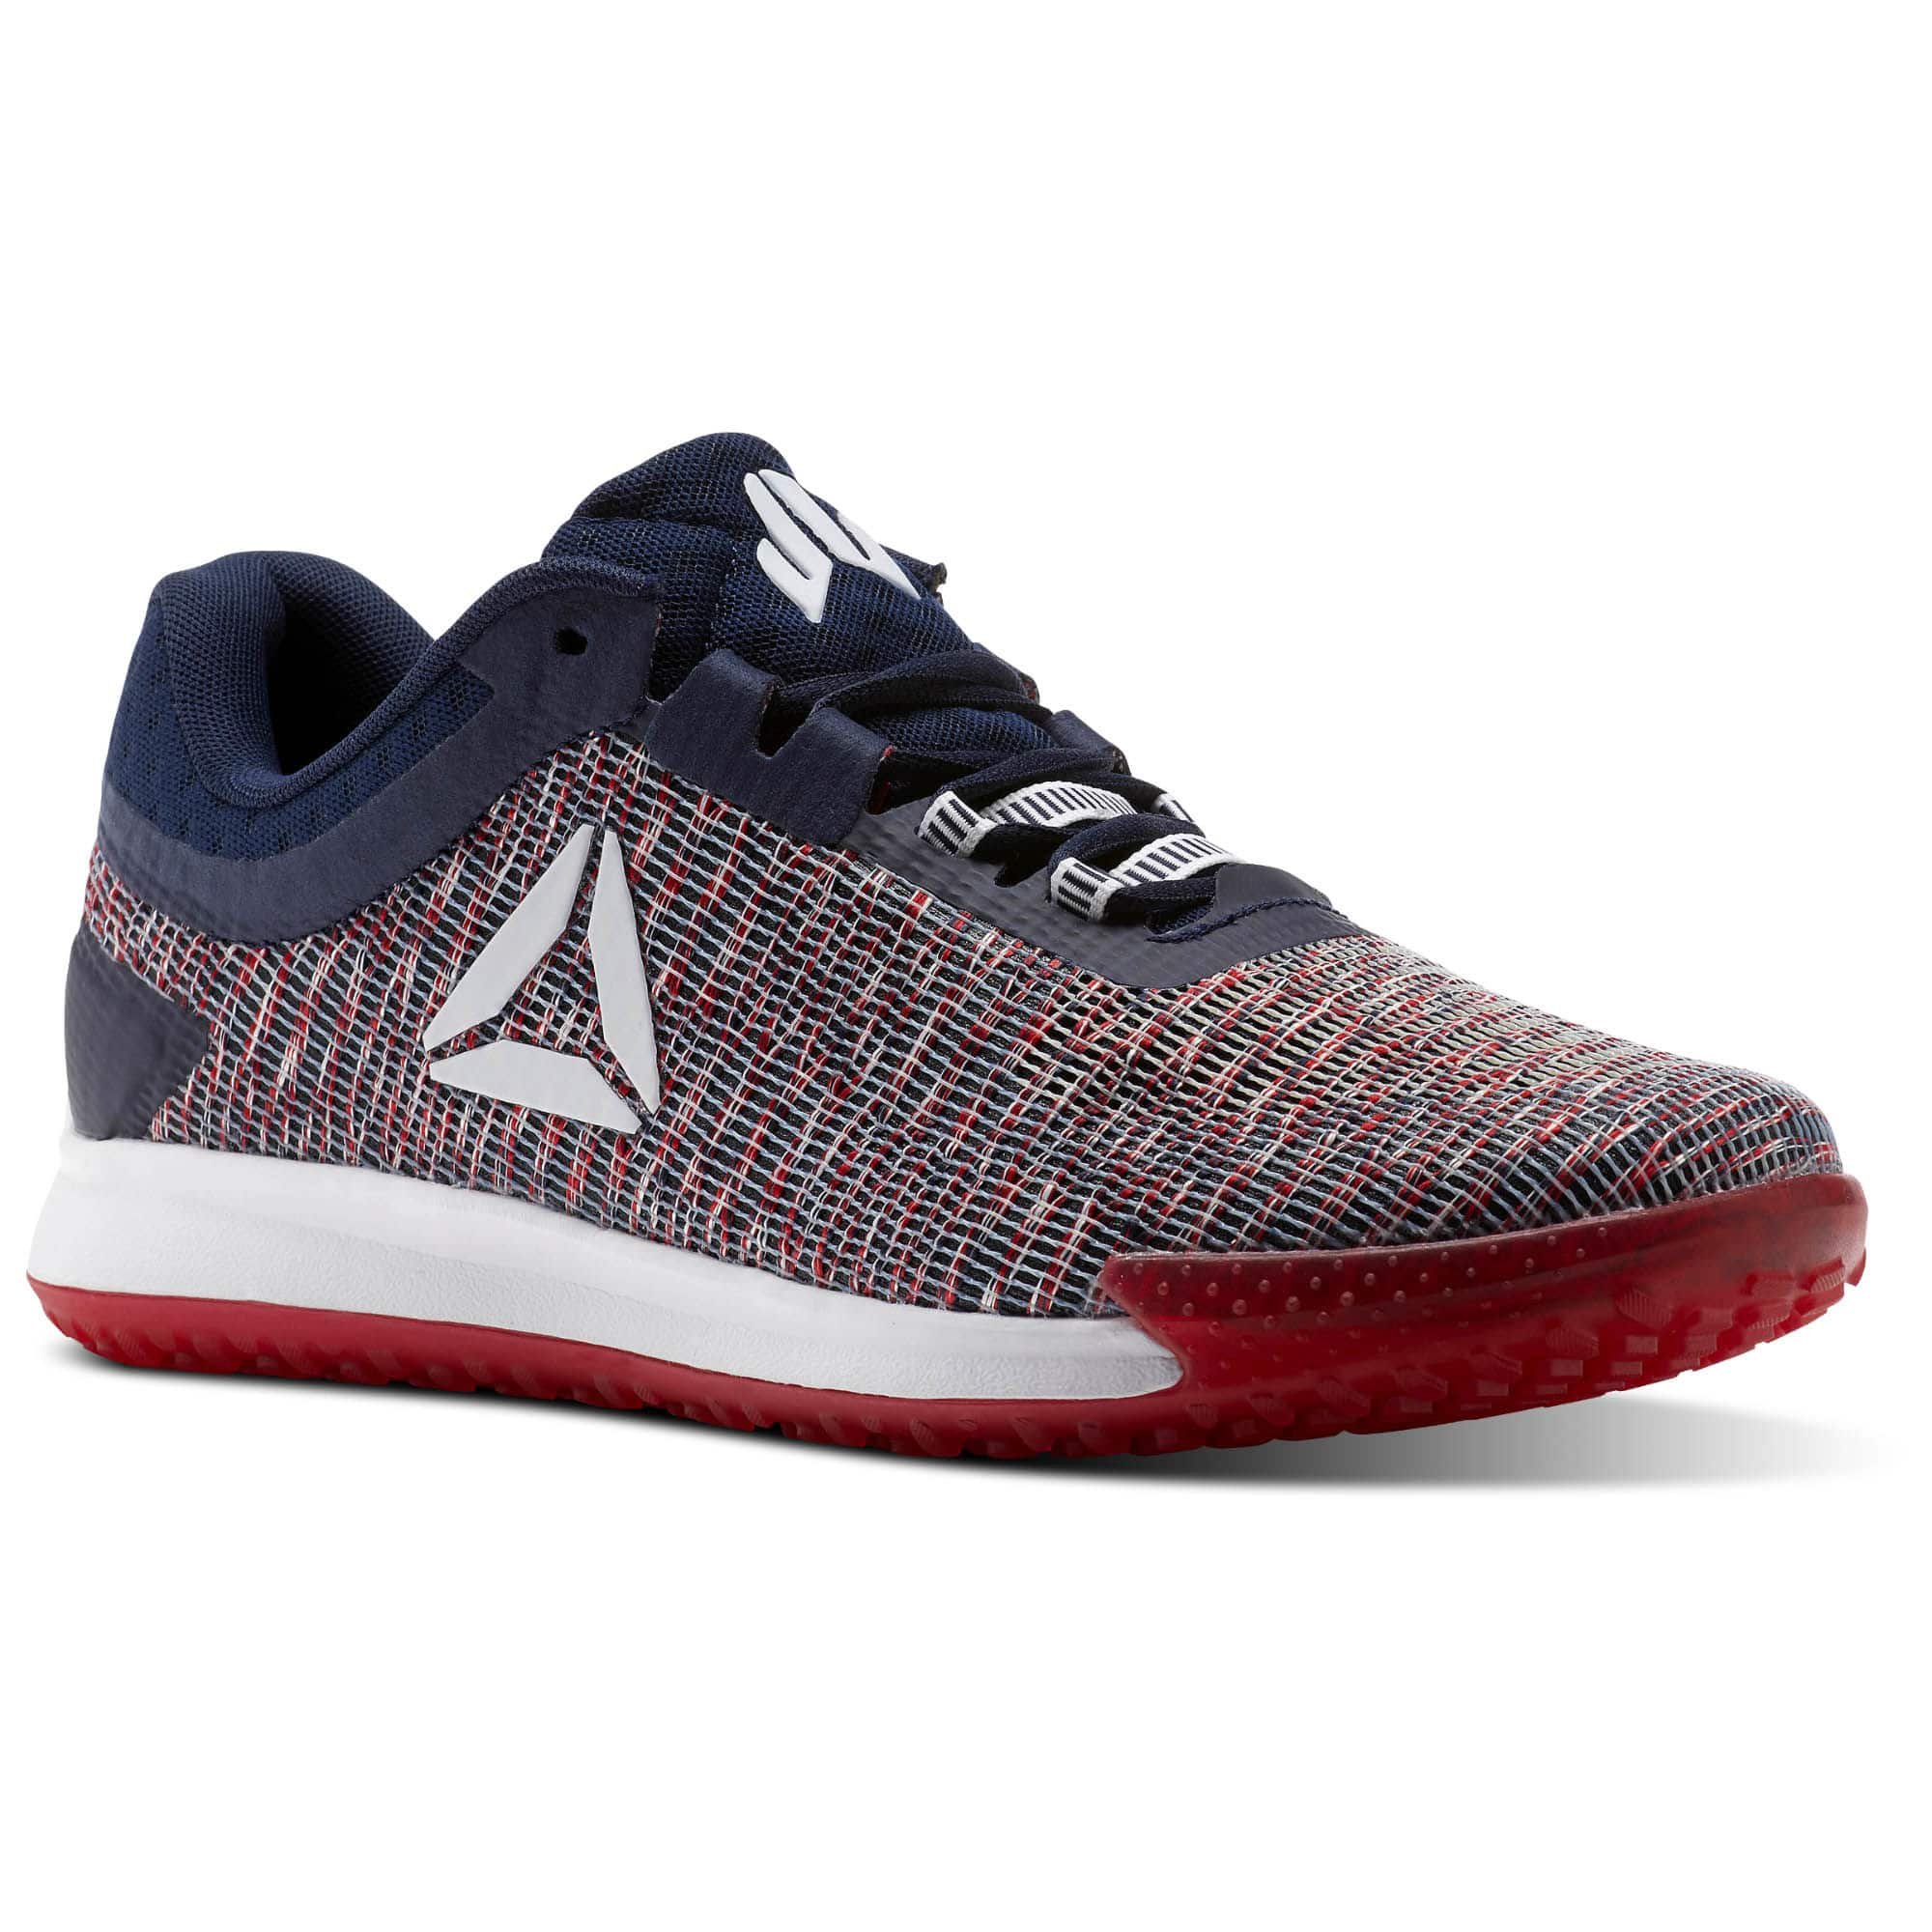 Reebok Men's JJ II Training Shoe (Navy/ Red/White) $49.99 + Free S/H (7.5-11 only)